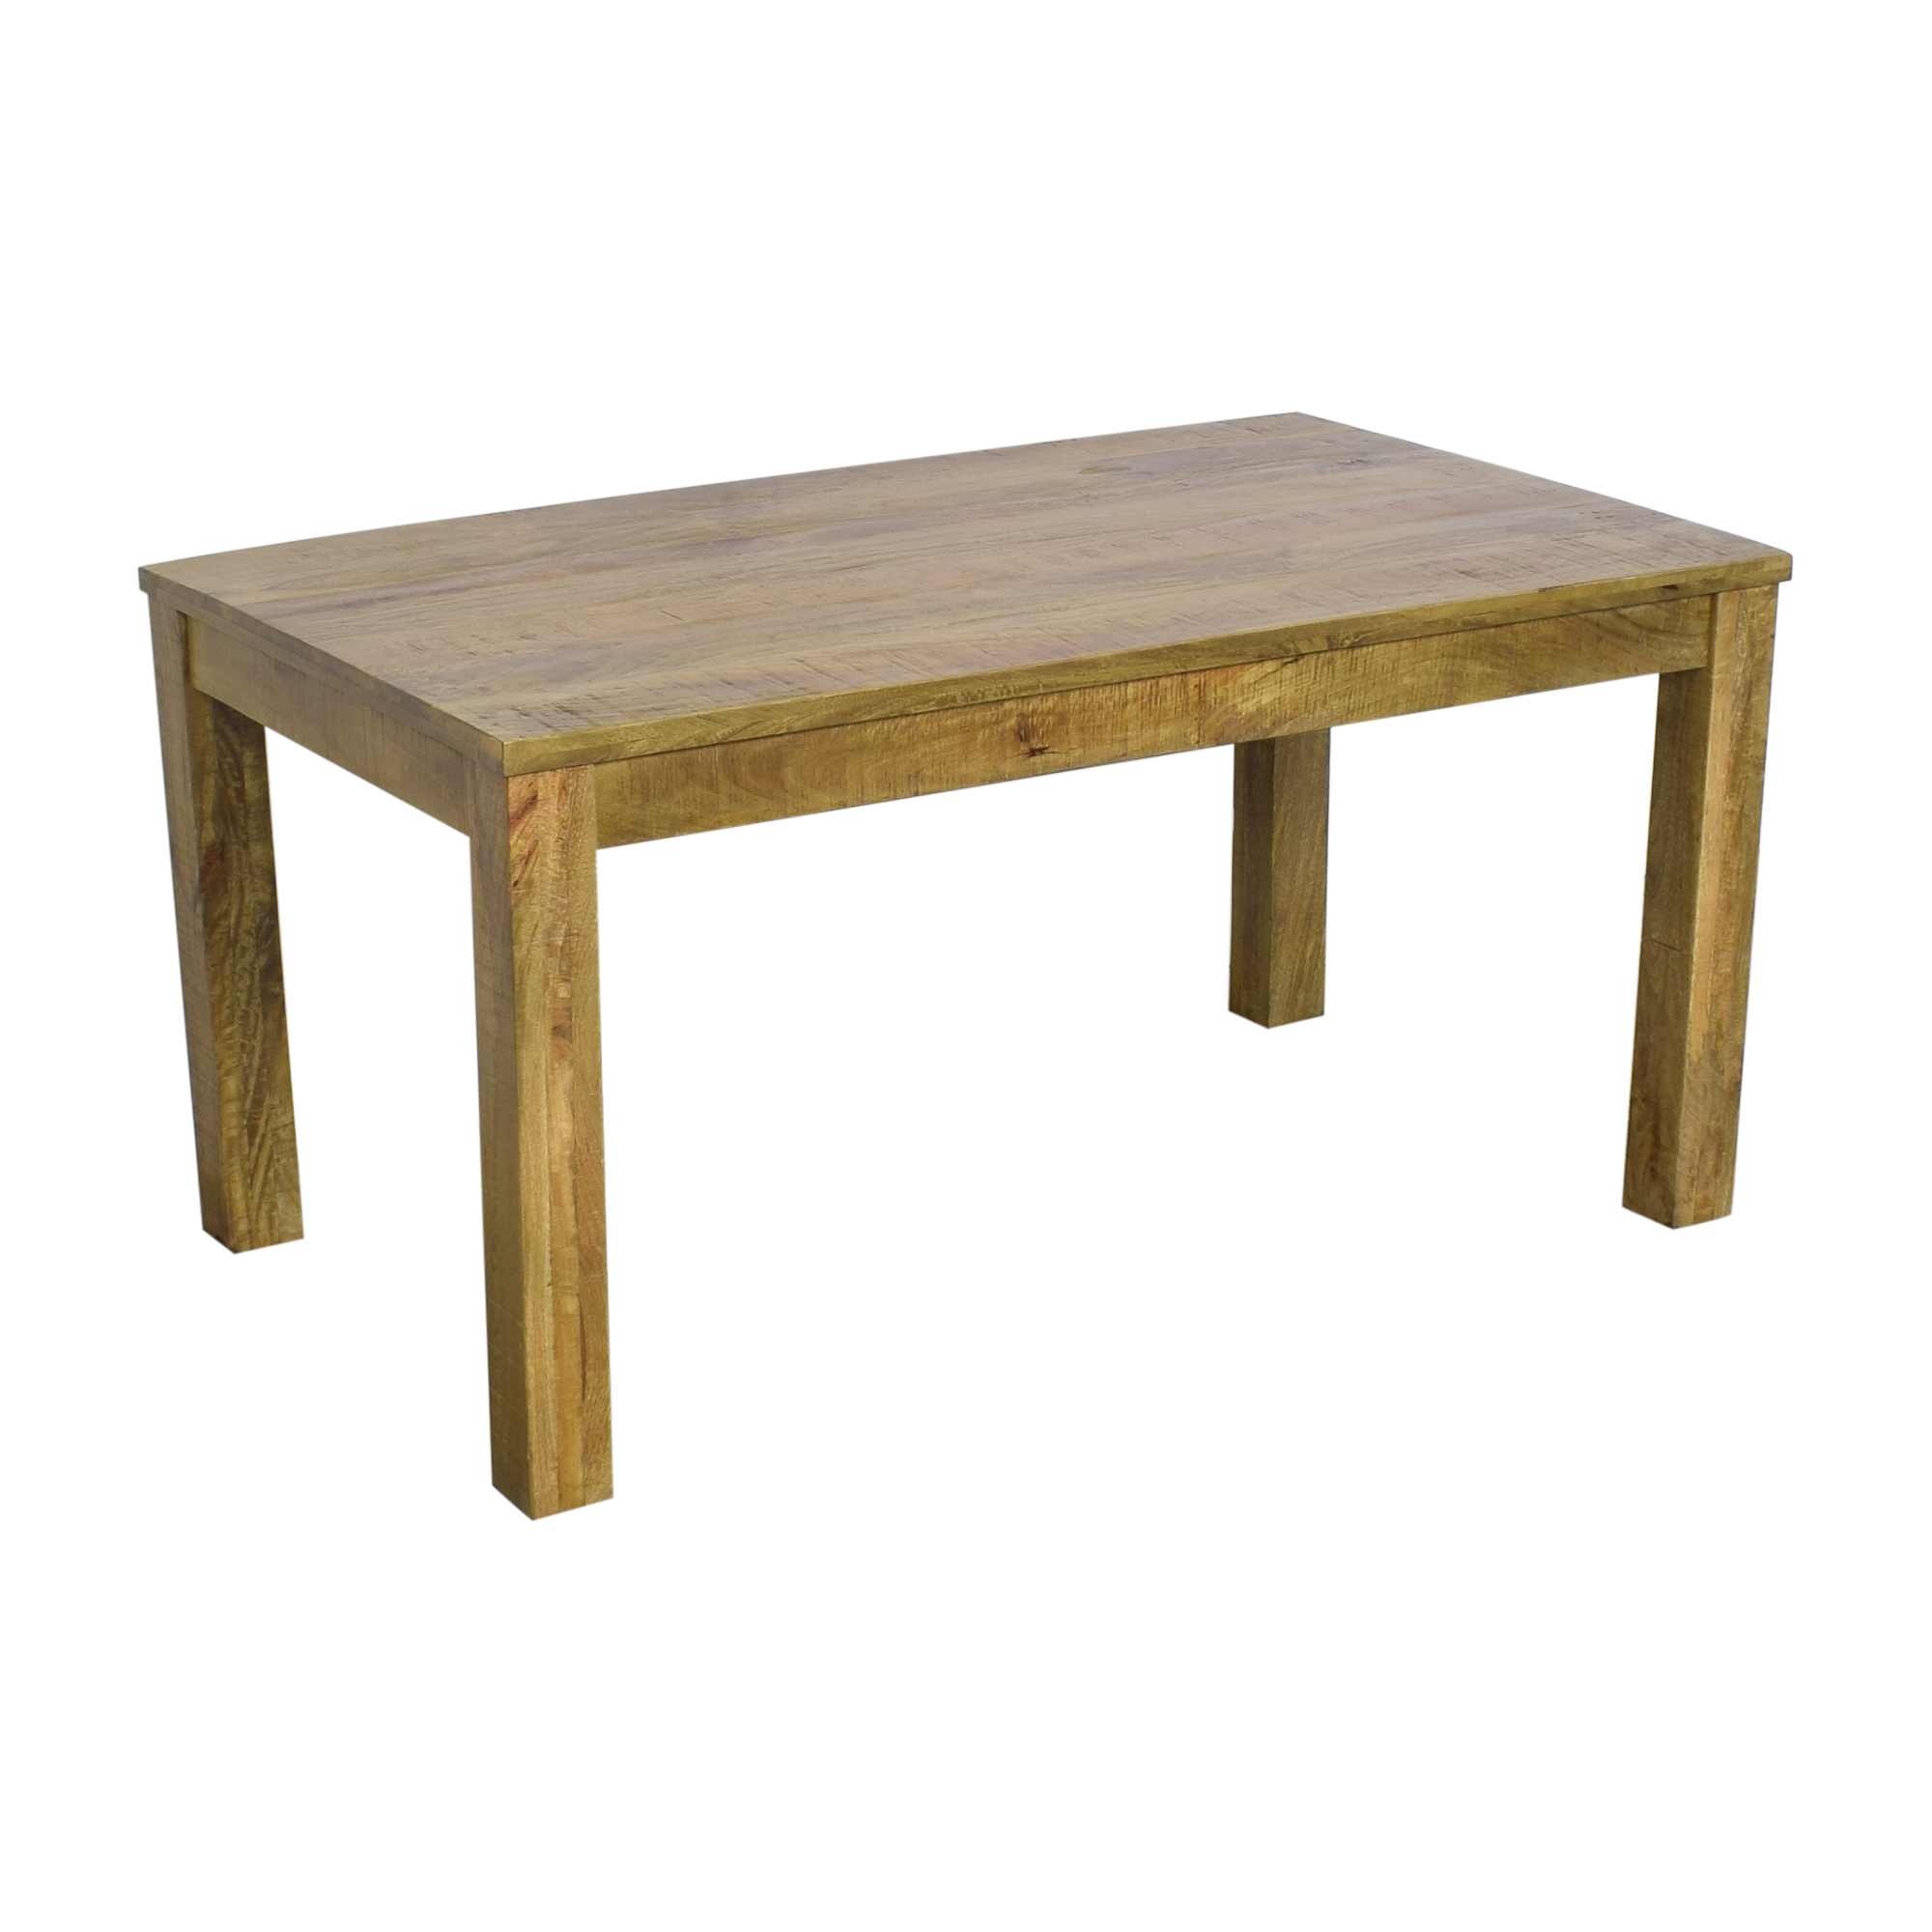 32% OFF - Pier 1 Pier 1 Parsons Java Dining Table / Tables